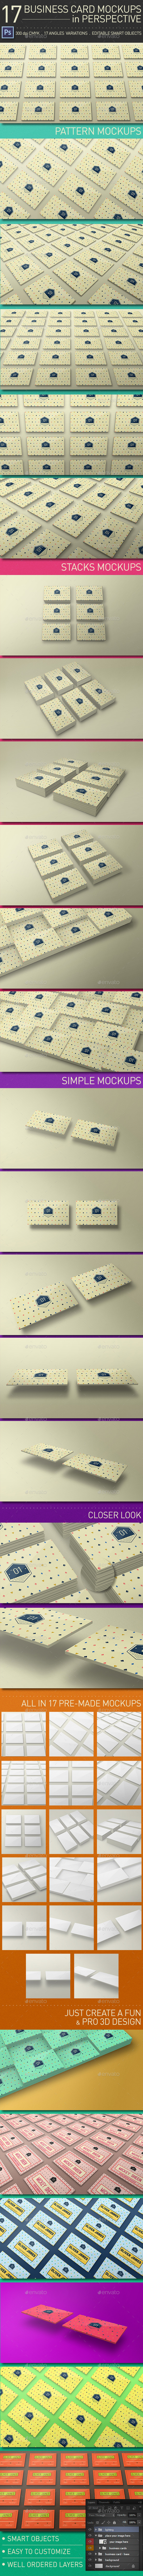 GraphicRiver Business Card Mockups in Perspective 11862546